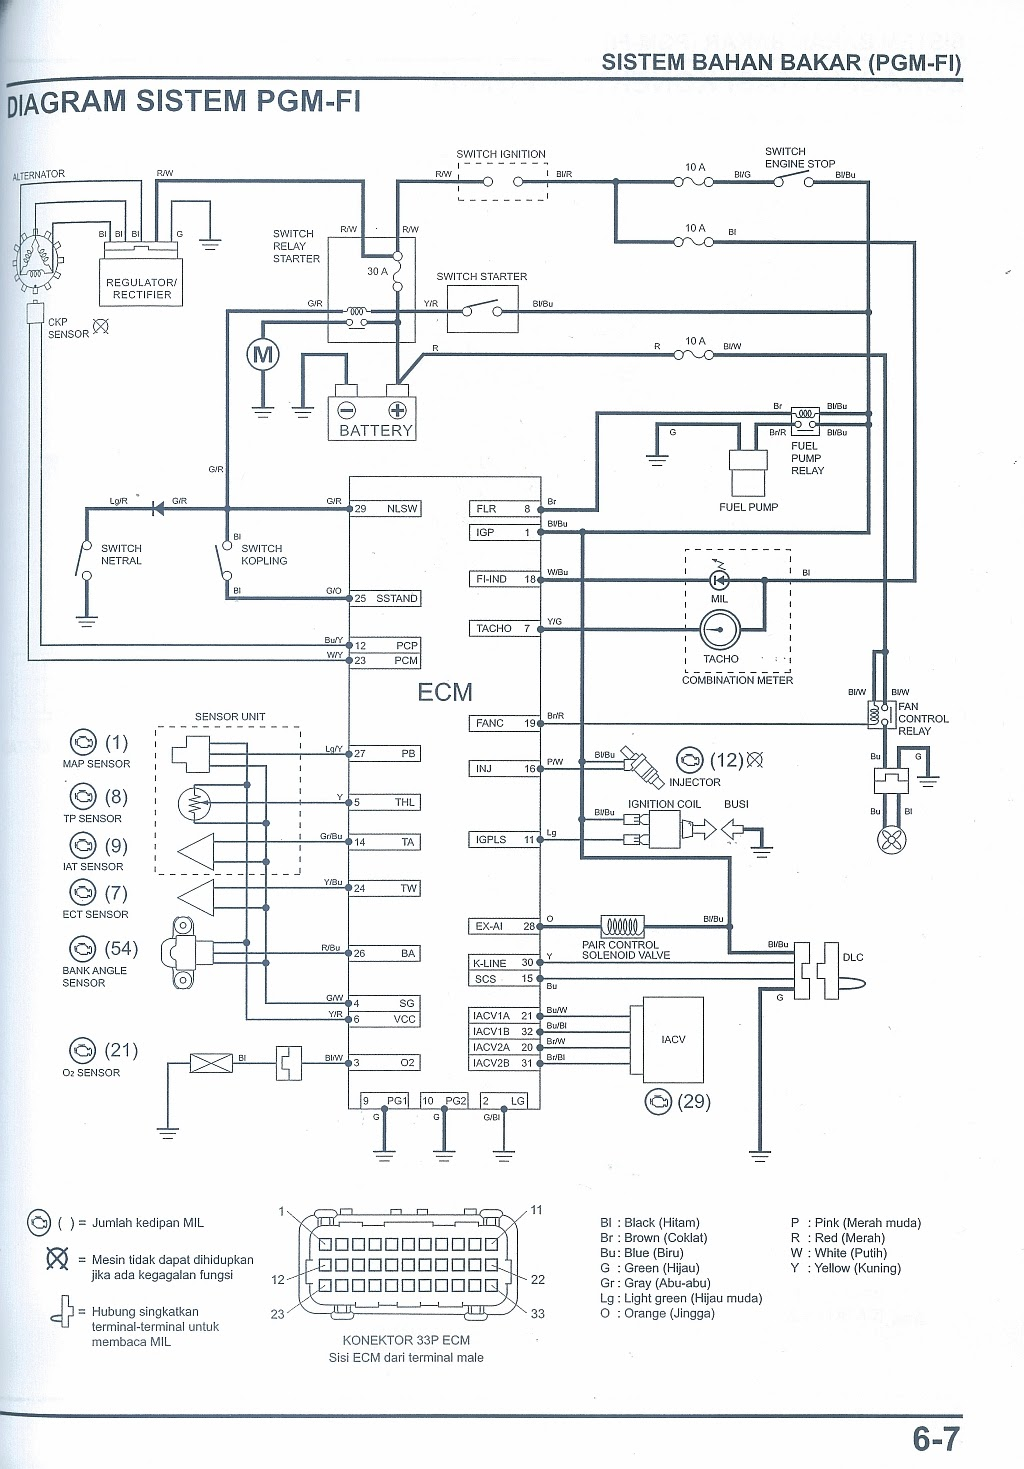 Wiring Diagram Cbr Trusted Diagrams Cbr250 Schematics Ceiling Fans With Lights Lg Refrigerator